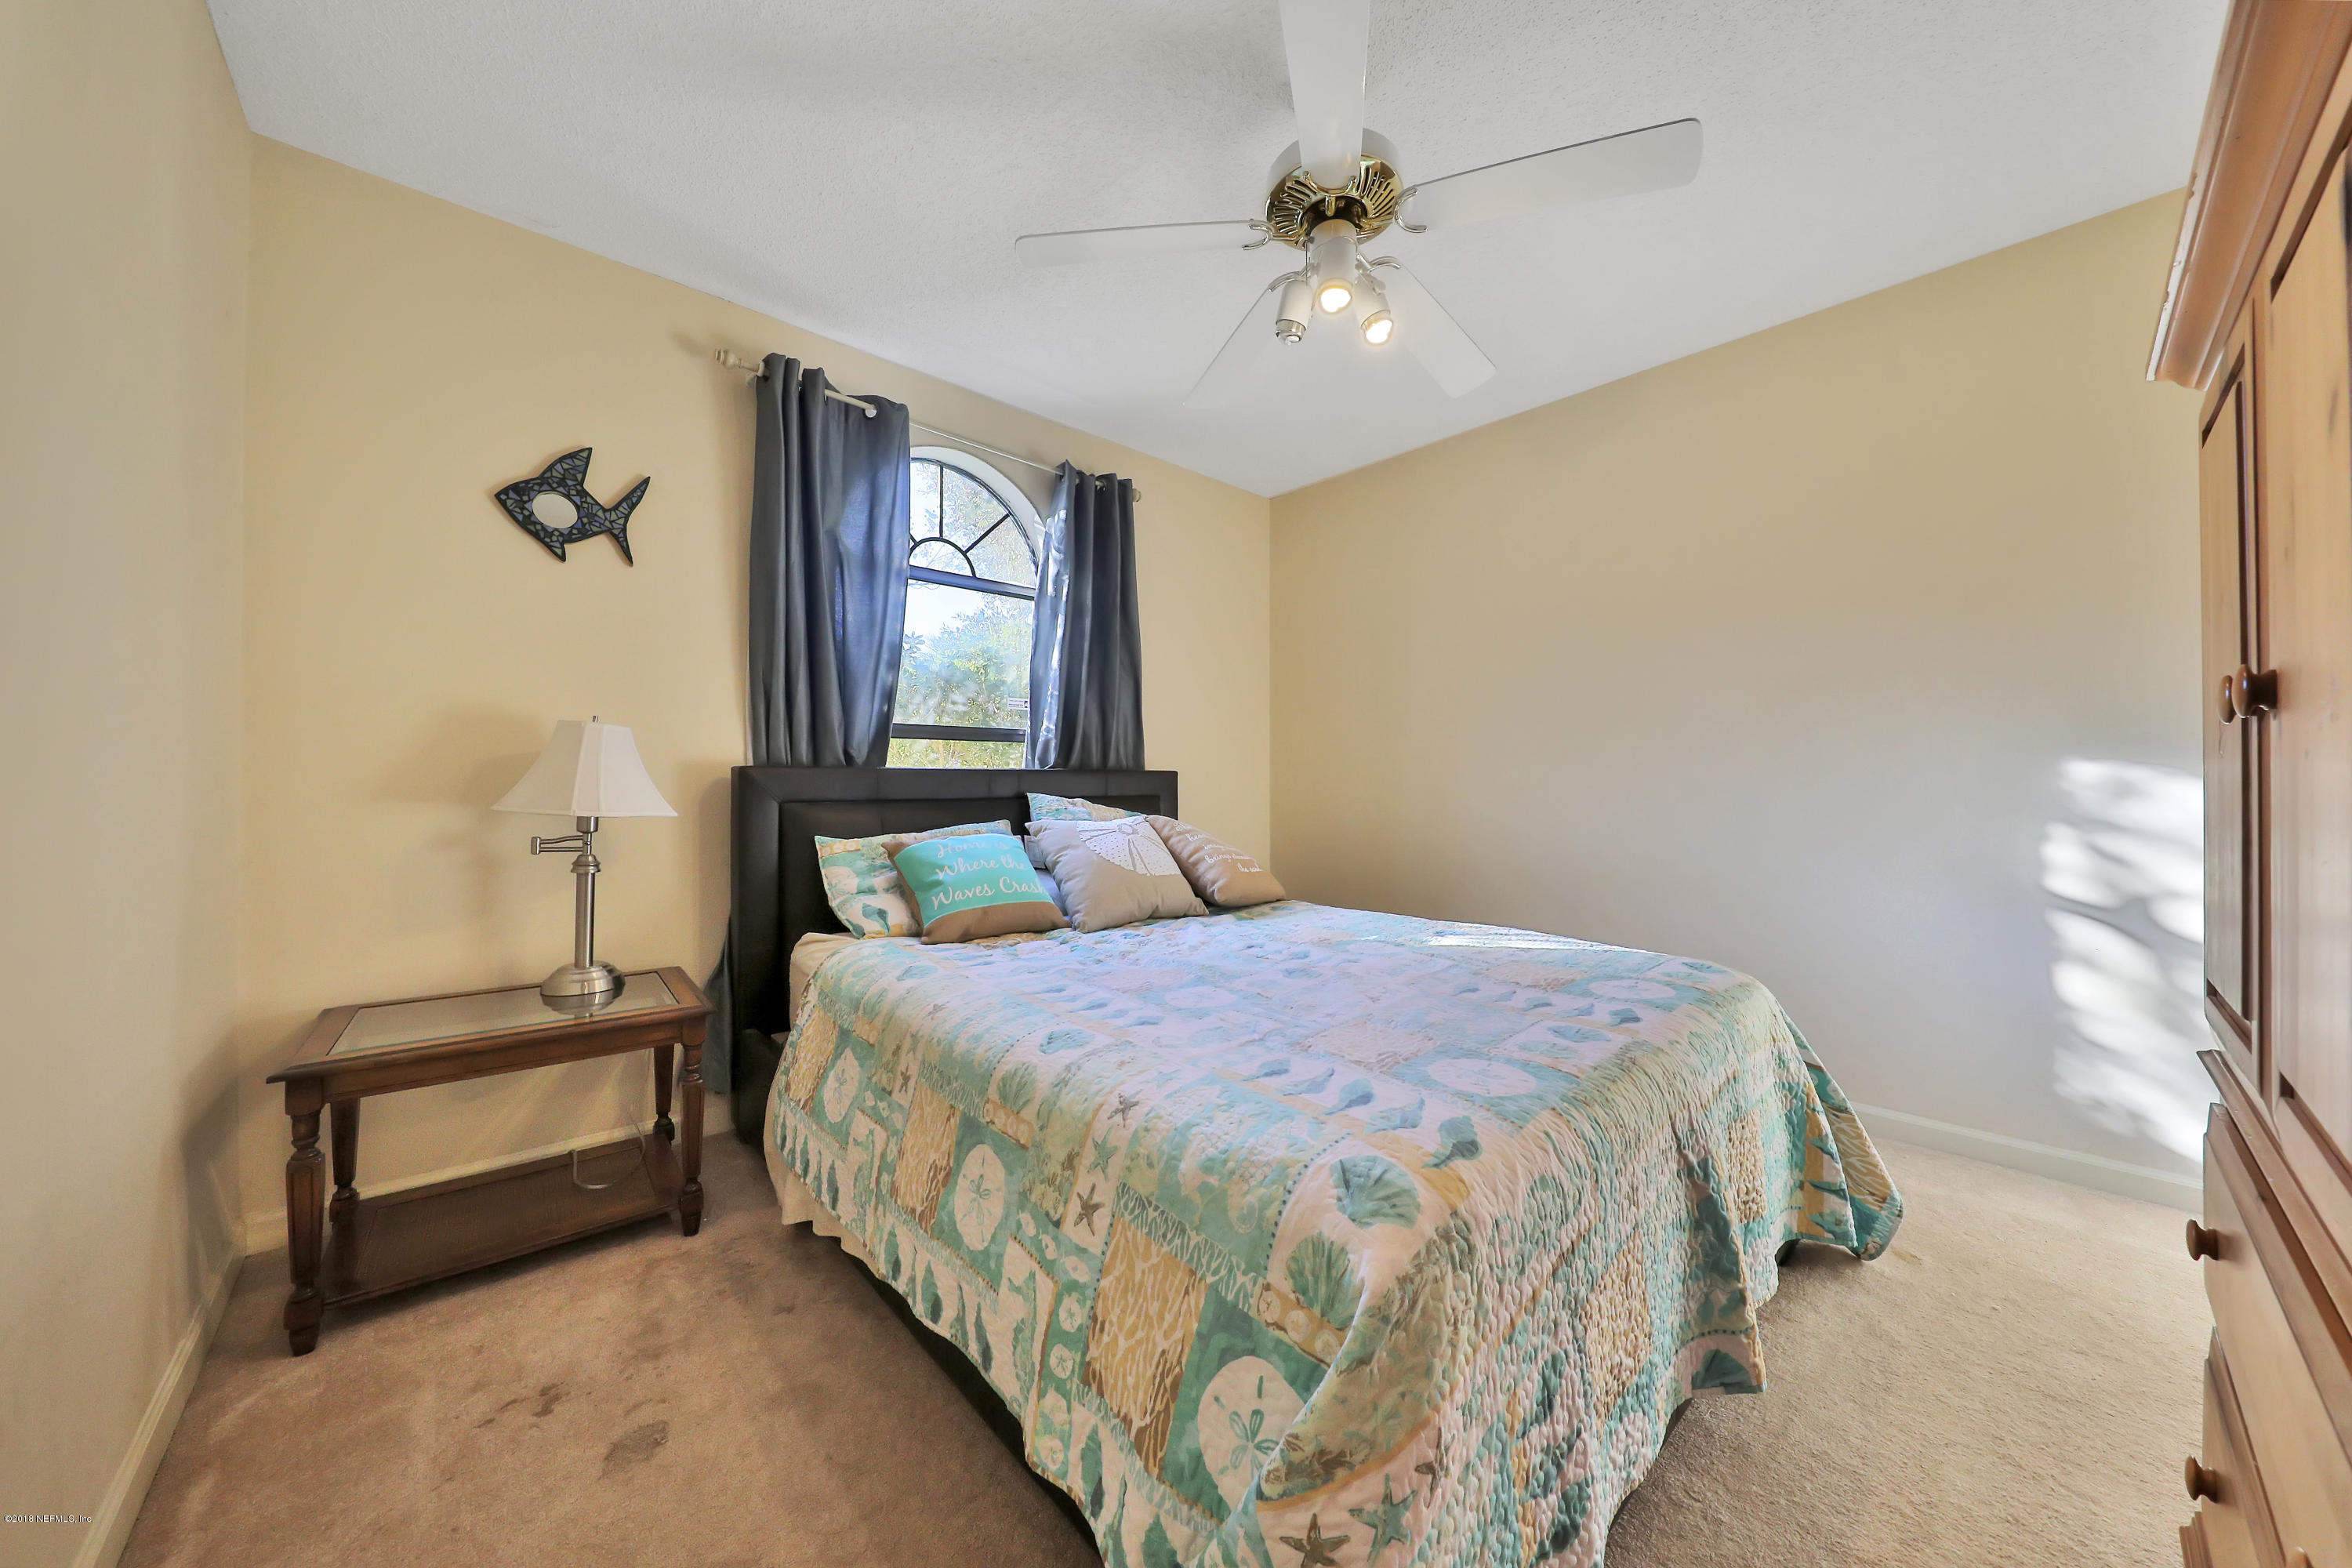 1613 ROBERTS, JACKSONVILLE BEACH, FLORIDA 32250, 3 Bedrooms Bedrooms, ,2 BathroomsBathrooms,Residential - single family,For sale,ROBERTS,964758